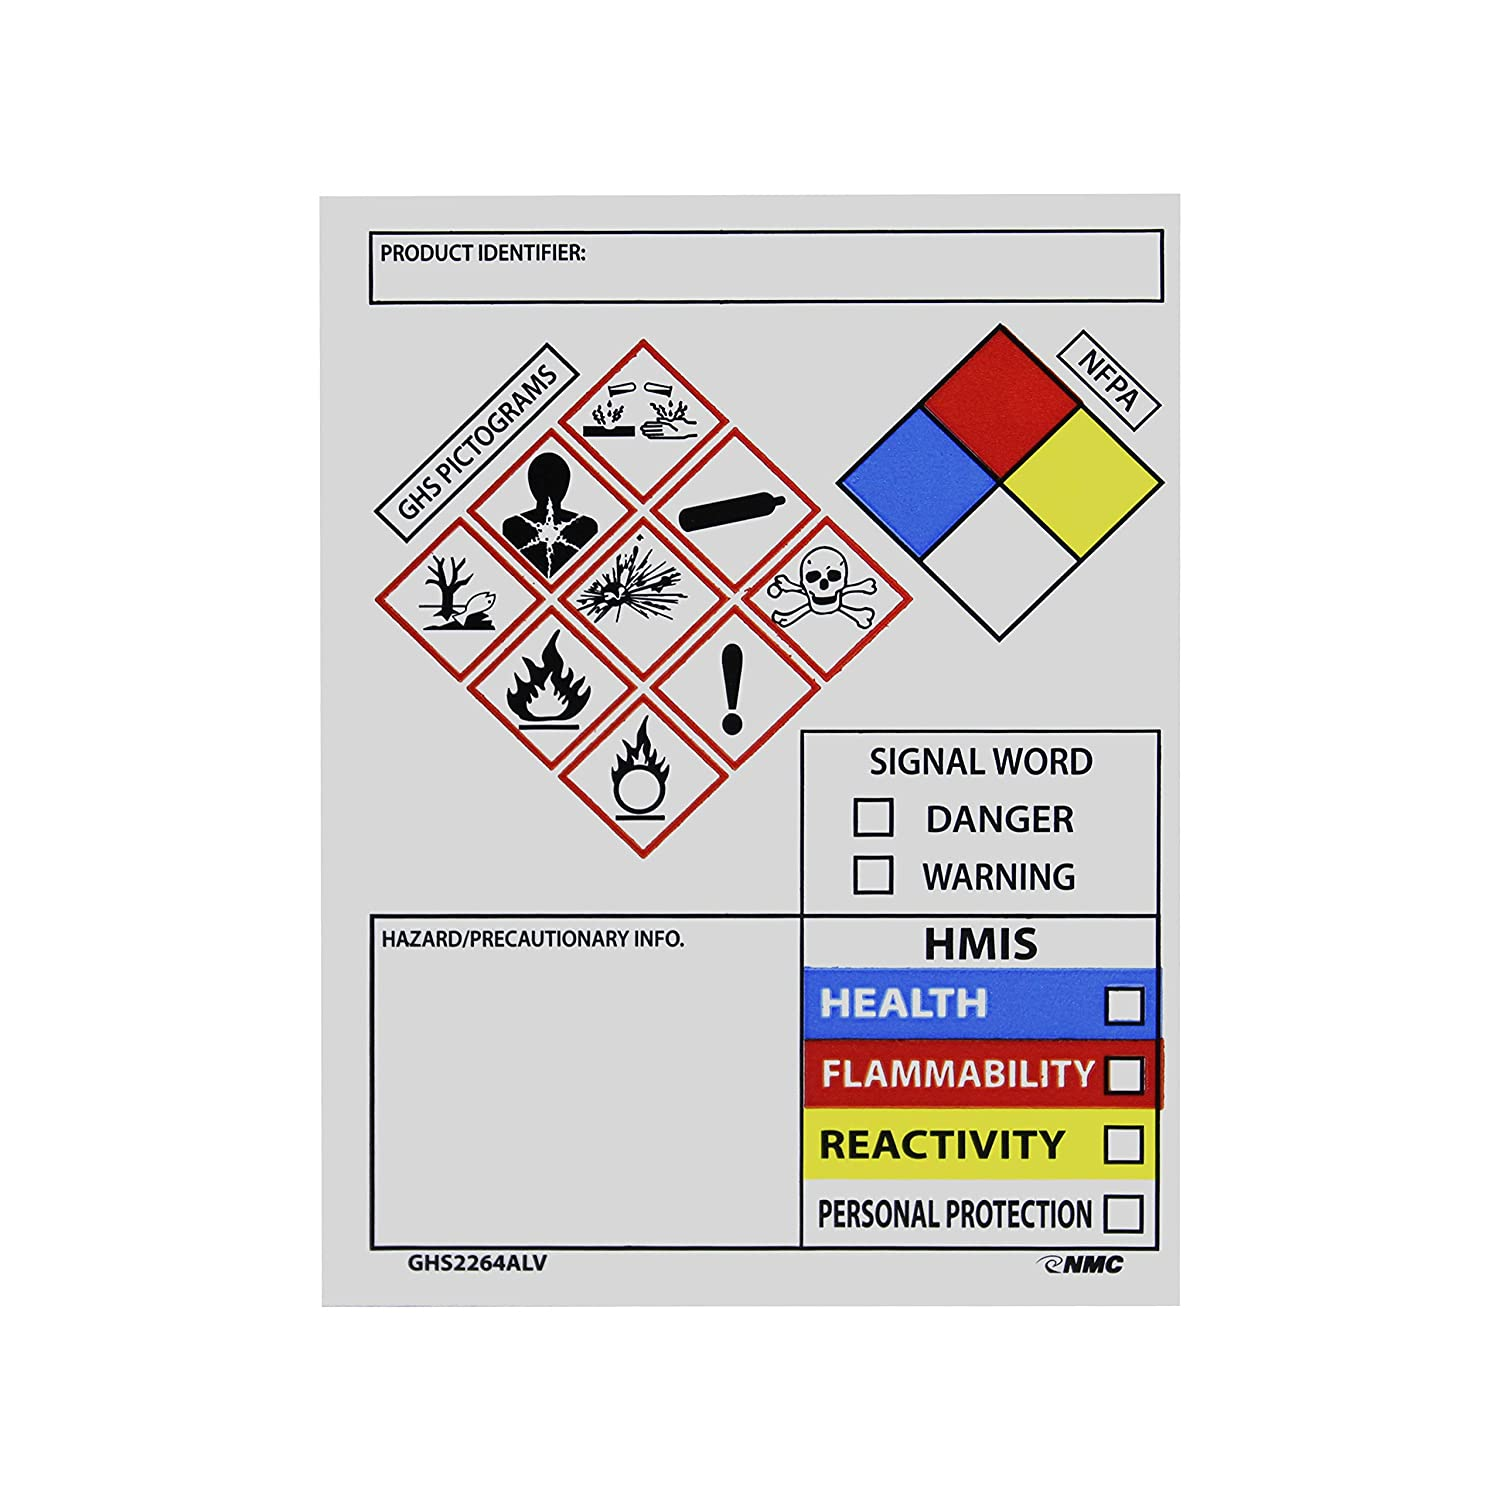 Nmc Ghs2264alv Secondary Container Labels Hazardprecautionary Info